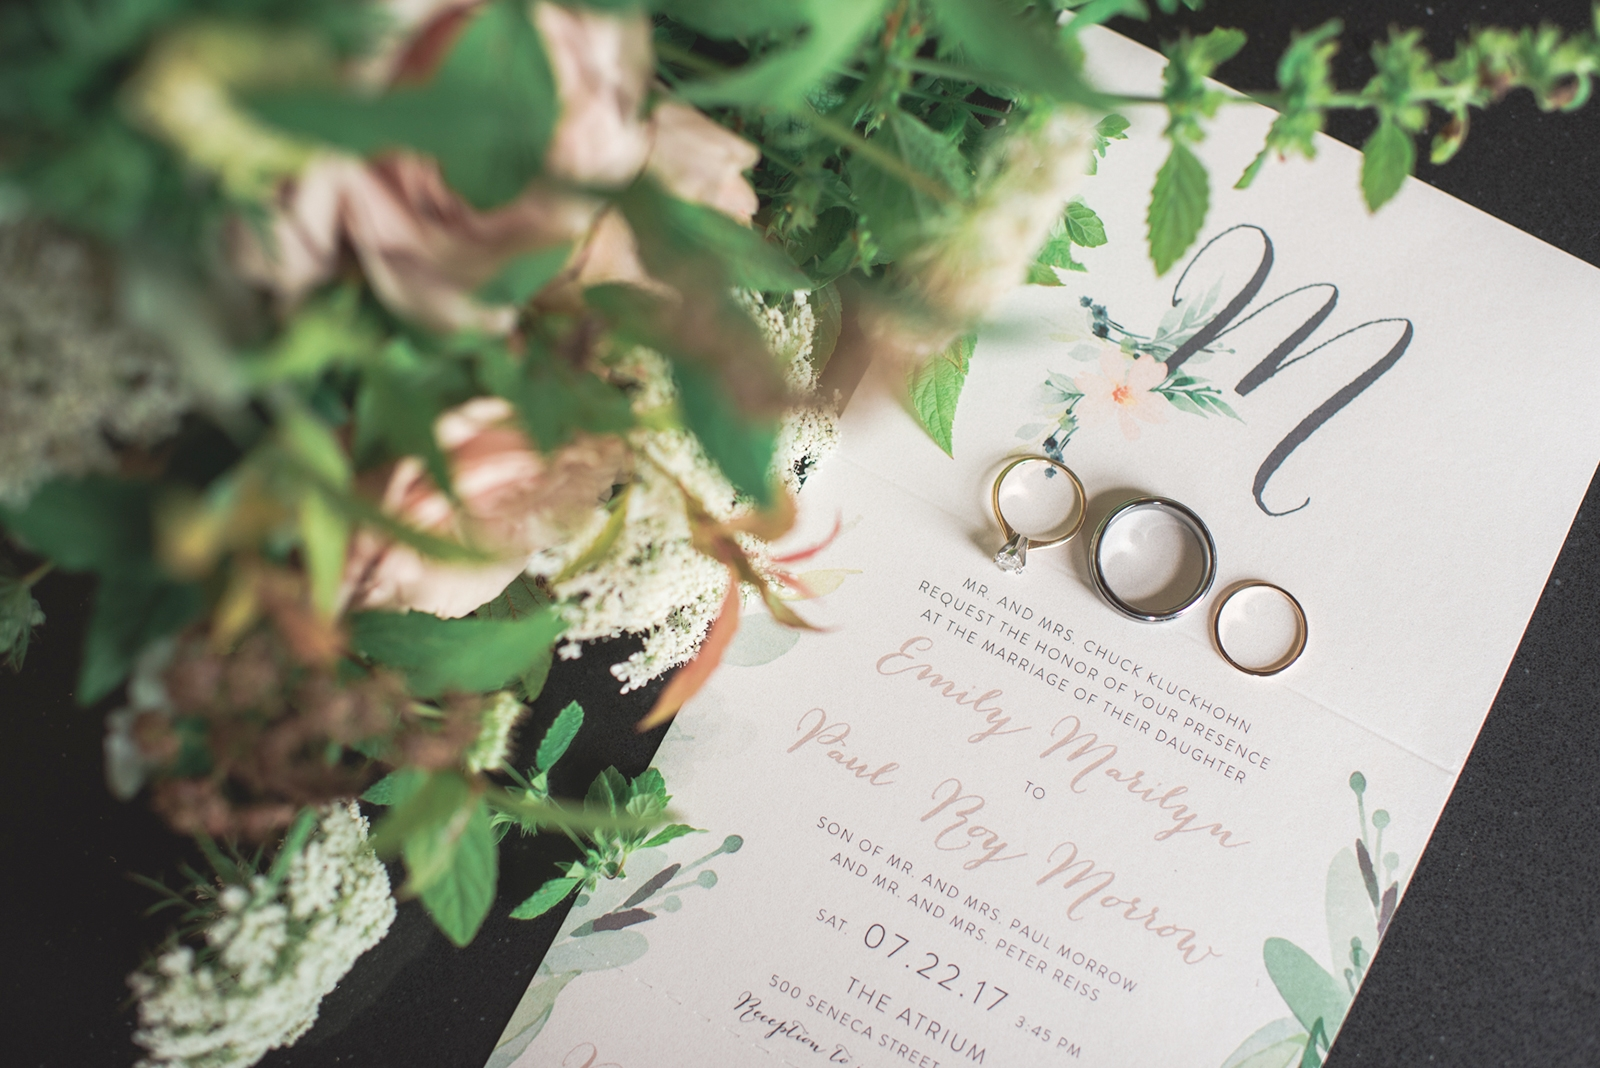 The couple's invitations are  from Krepe-Kraft on Elmwood, and the rings from Jared.